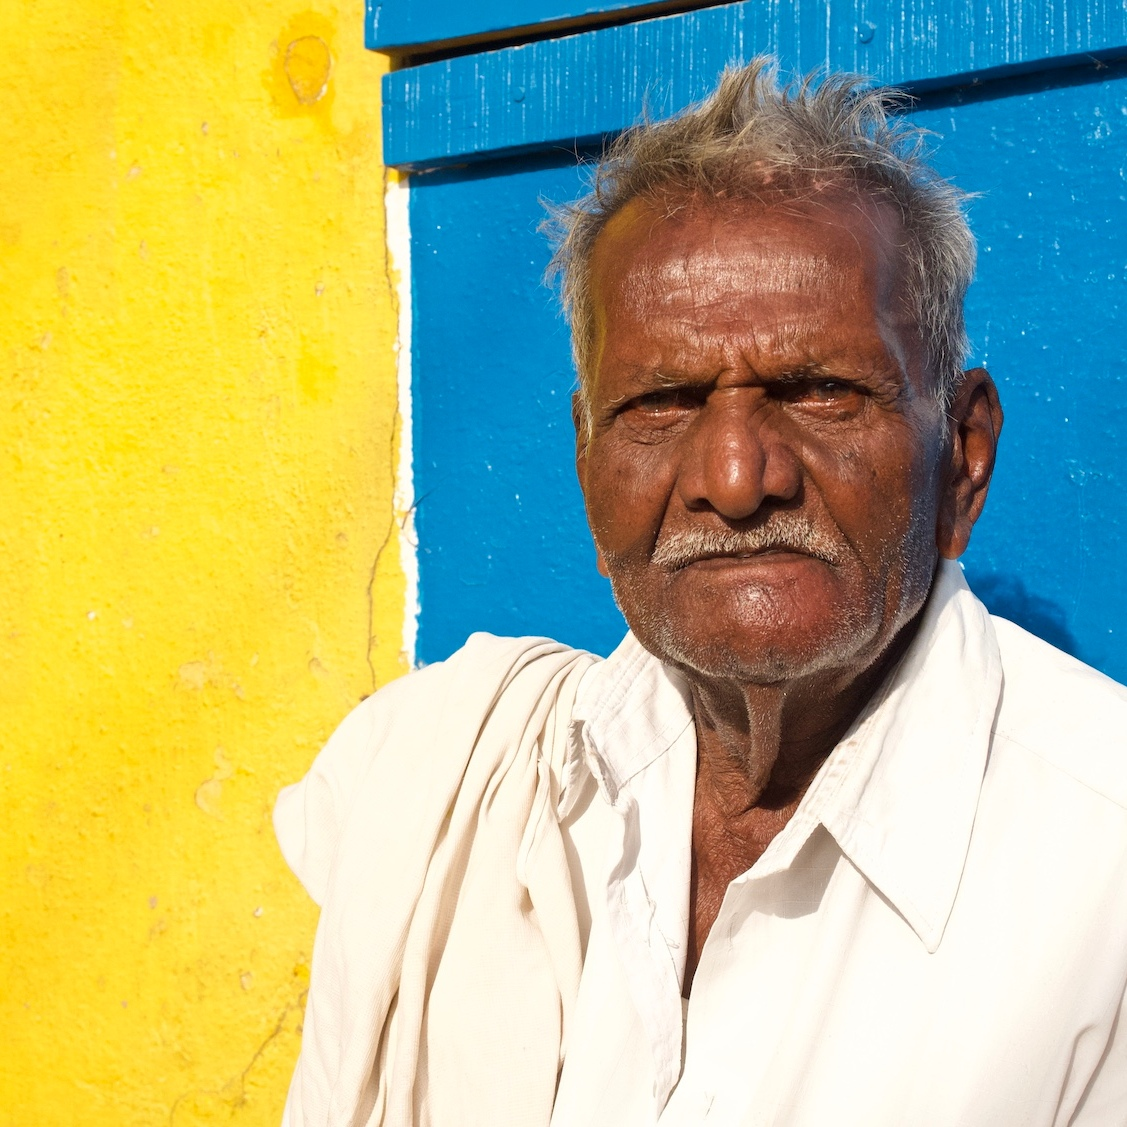 Old man with yellow and blue background.